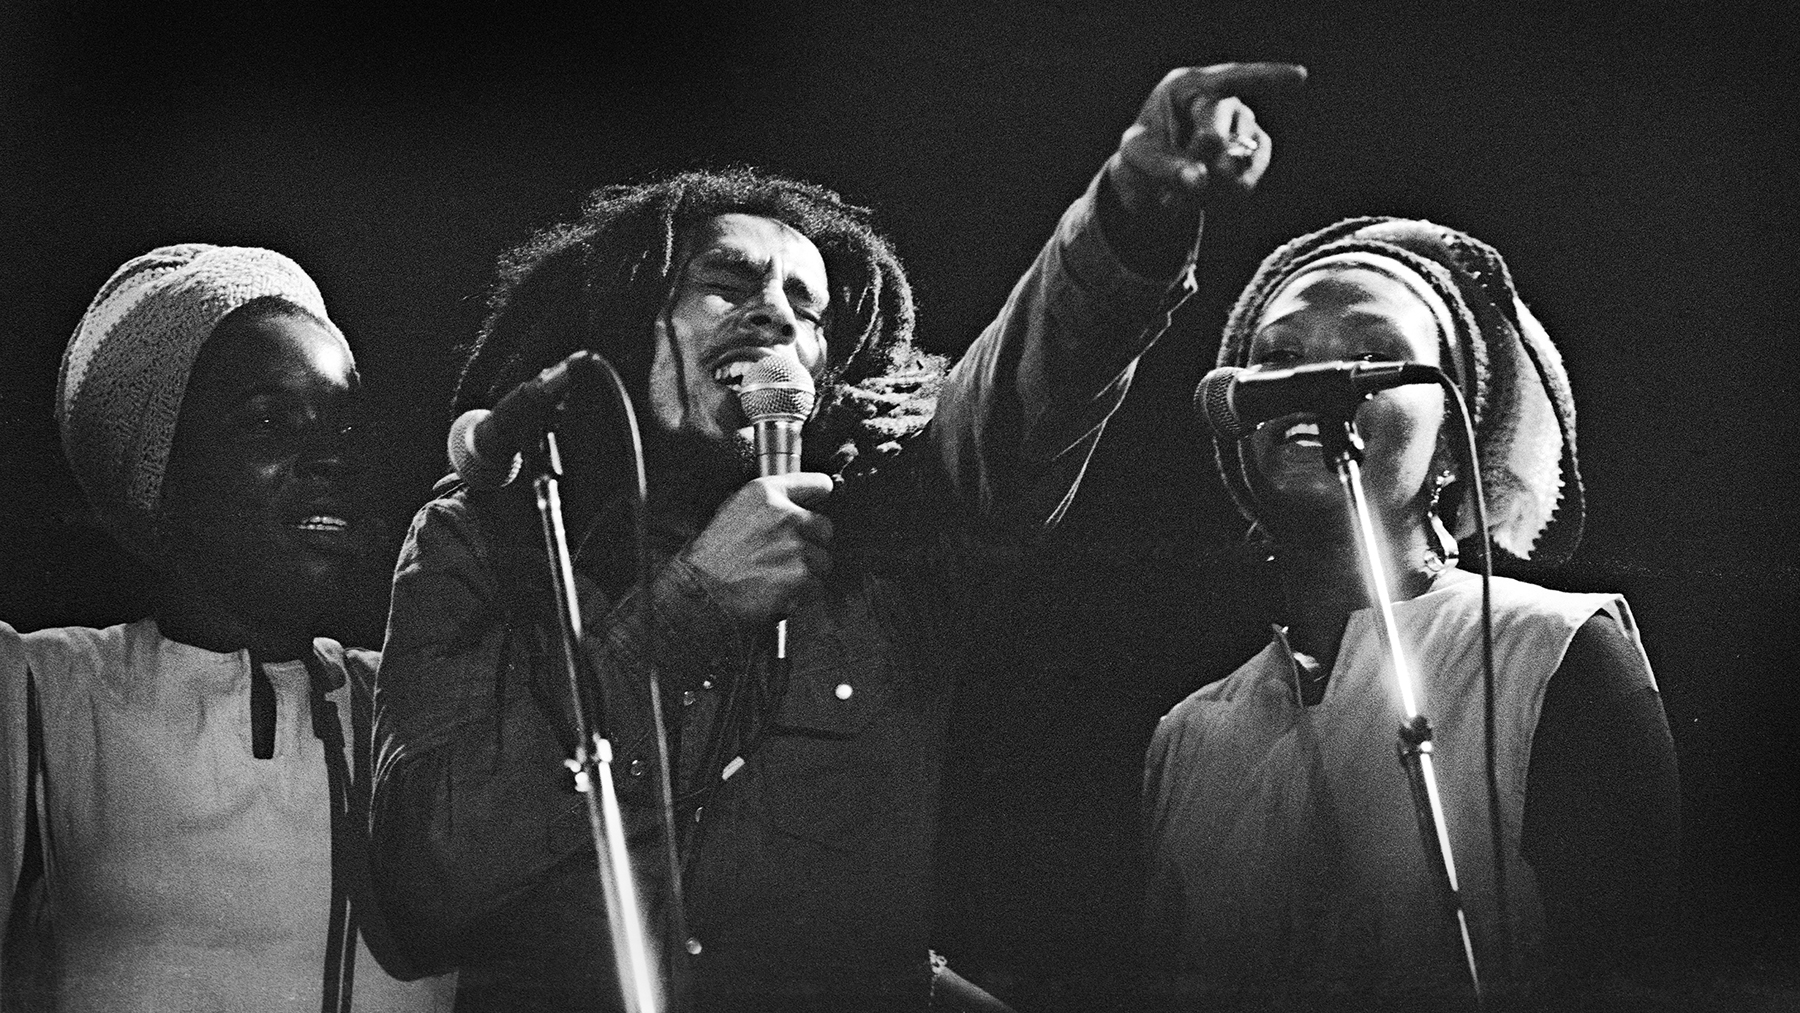 Bob Marley, I Threes, Vorst Nationaal, Brussels, Belgium, 22/06/1980. (Photo by Gie Knaeps/Getty Images)